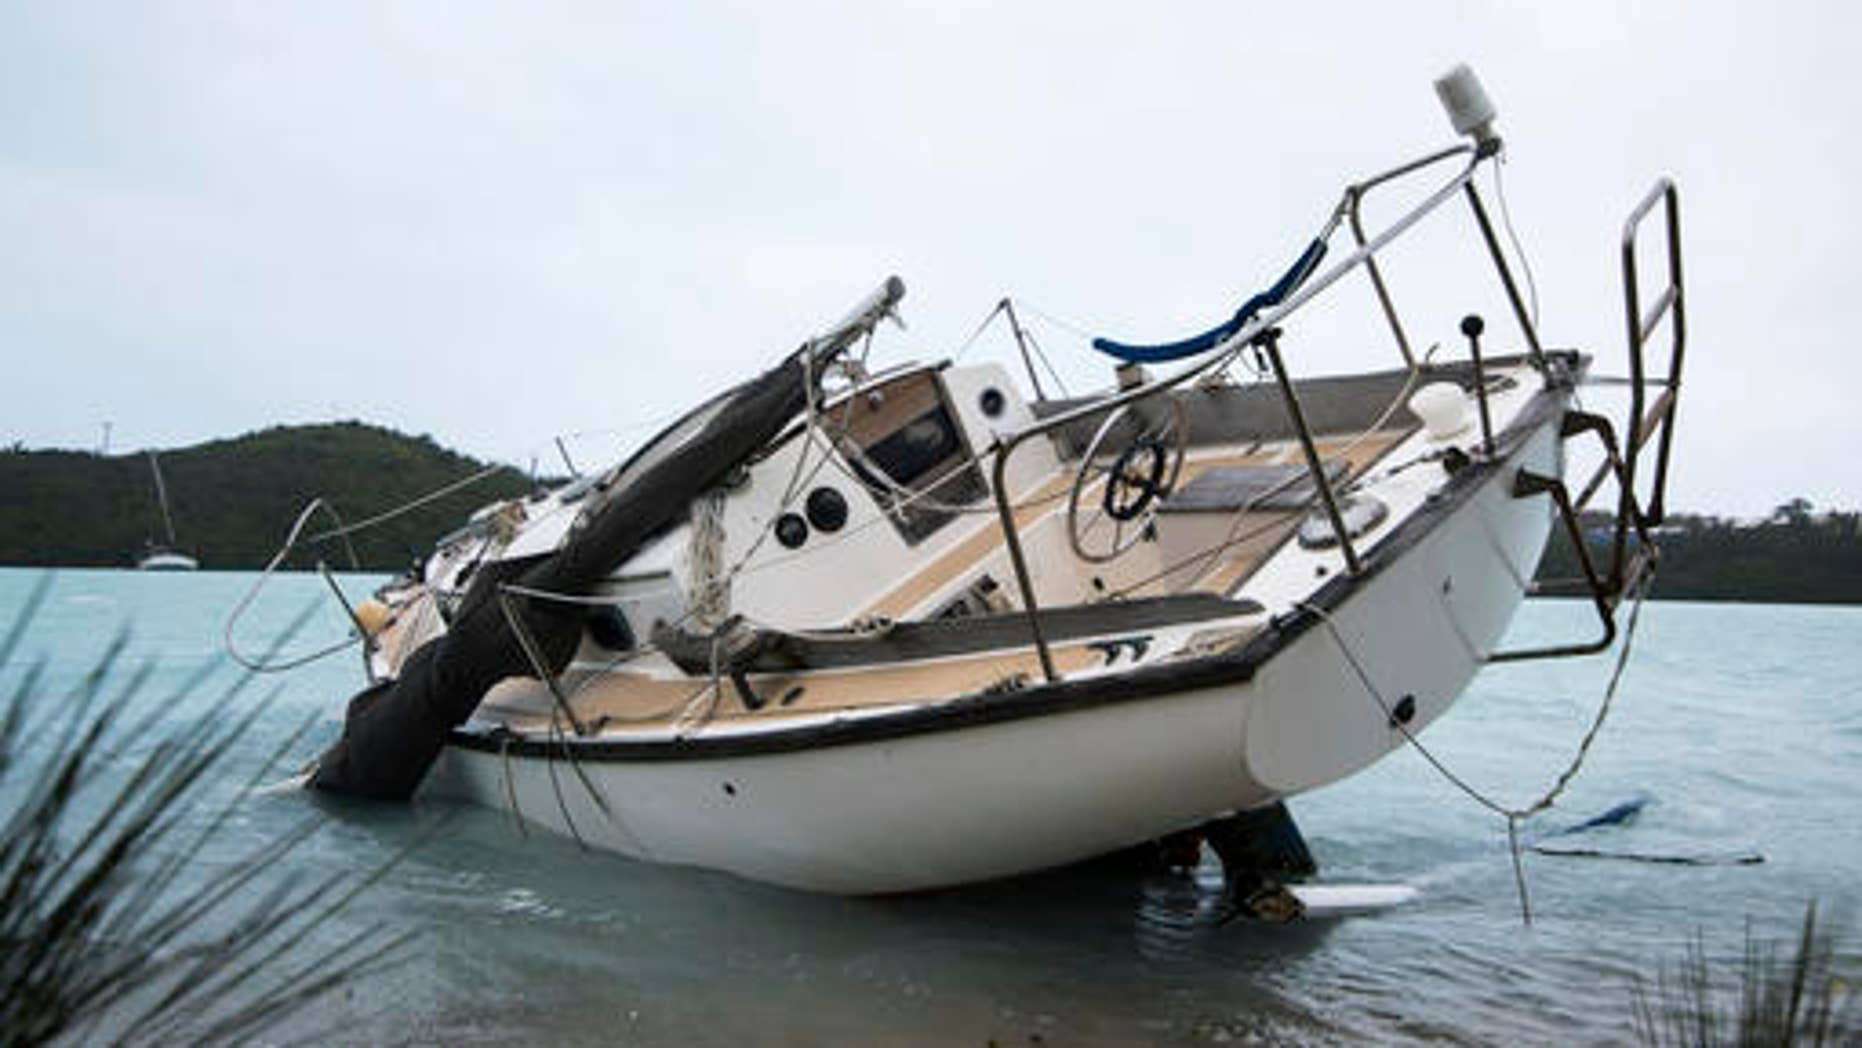 A sailboat lays damaged on the shore of Ferry Reach after breaking free from its mooring after the passing of Hurricane Nicole in St. Georges, Bermuda, Thursday, Oct. 13, 2016. Nicole pummeled the resort island as a Category 3 storm with winds that snapped trees and peeled off roofs before it spun away into open water as a Category 1 storm. (AP Photo/Mark Tatem)